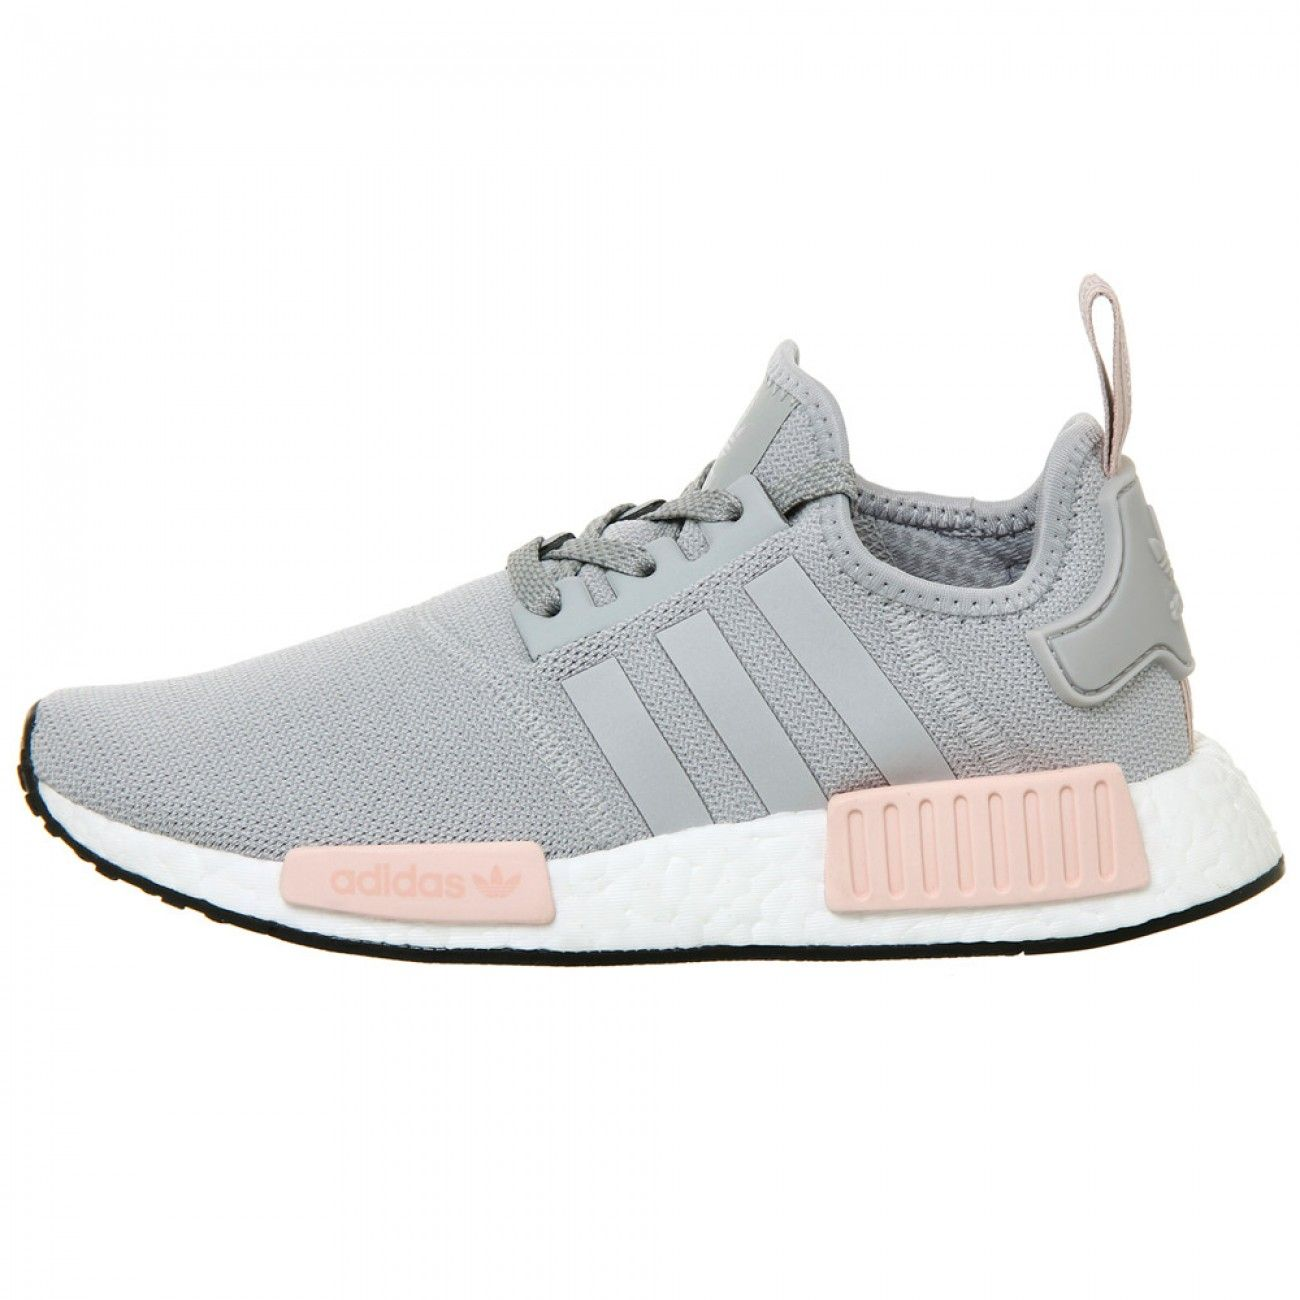 Professional Shoe Adidas Originals NMD Vapour Grey Pink Light Sell at a  Discount